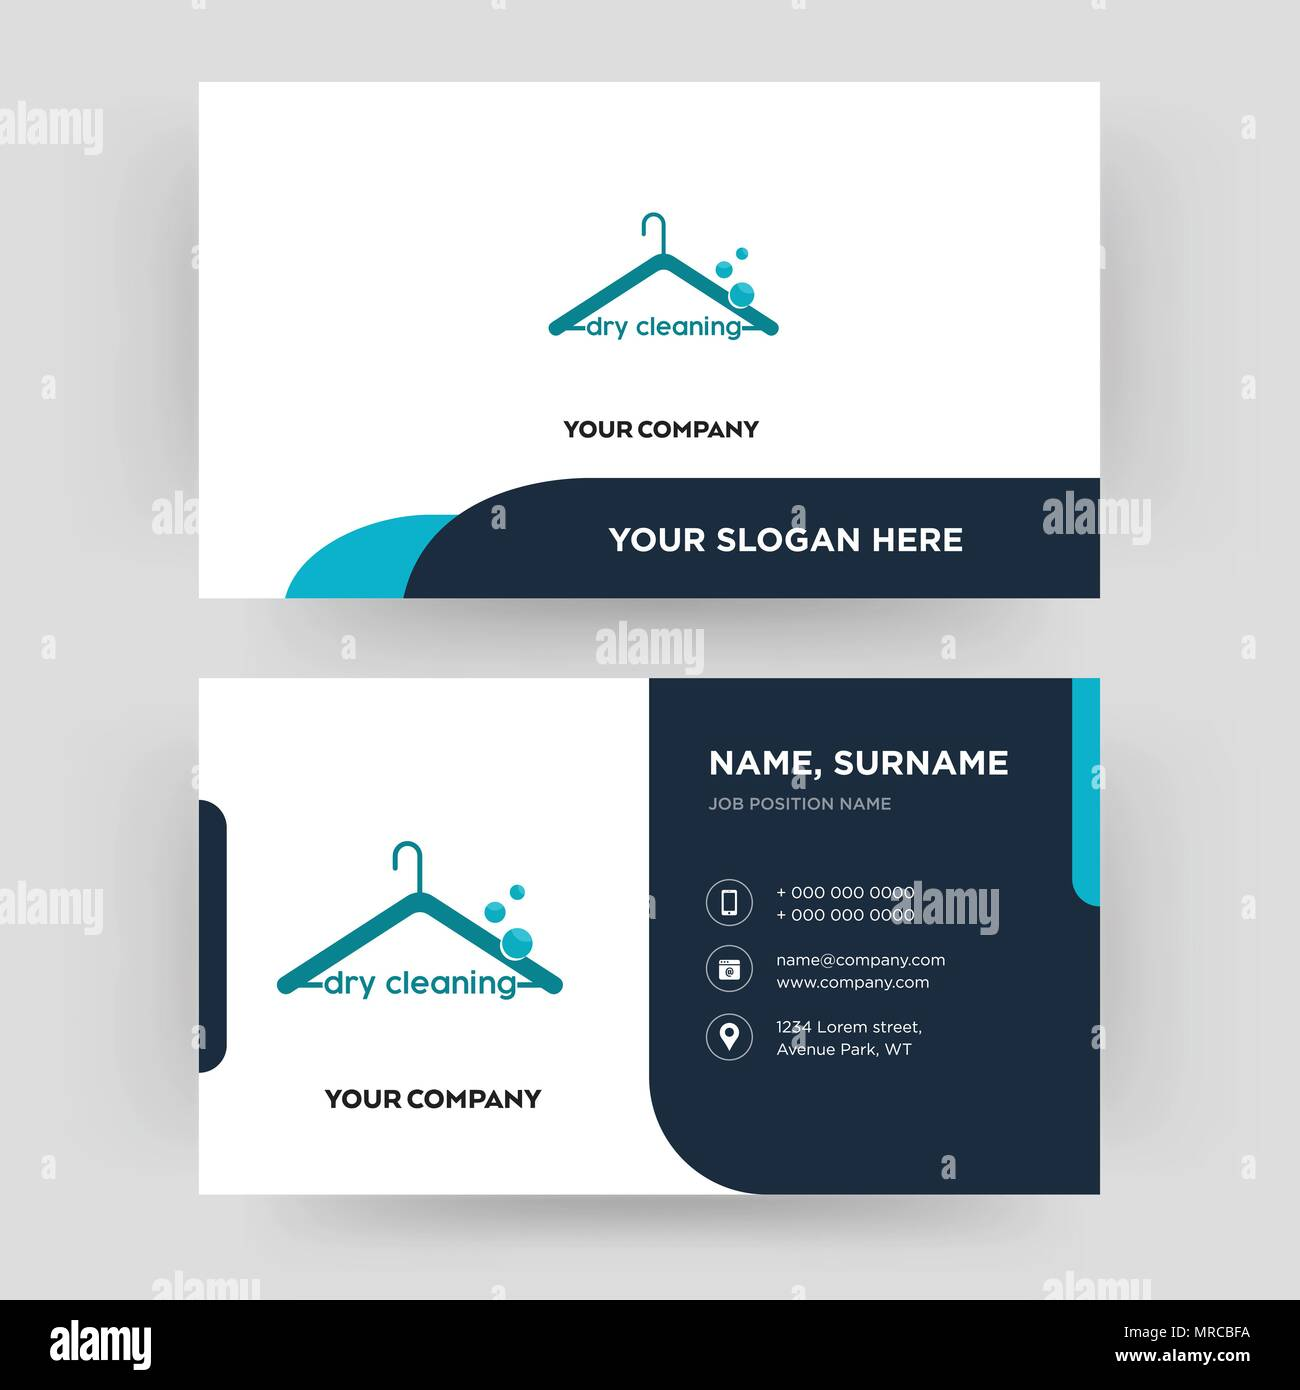 dry cleaning, business card design template, Visiting for your ...